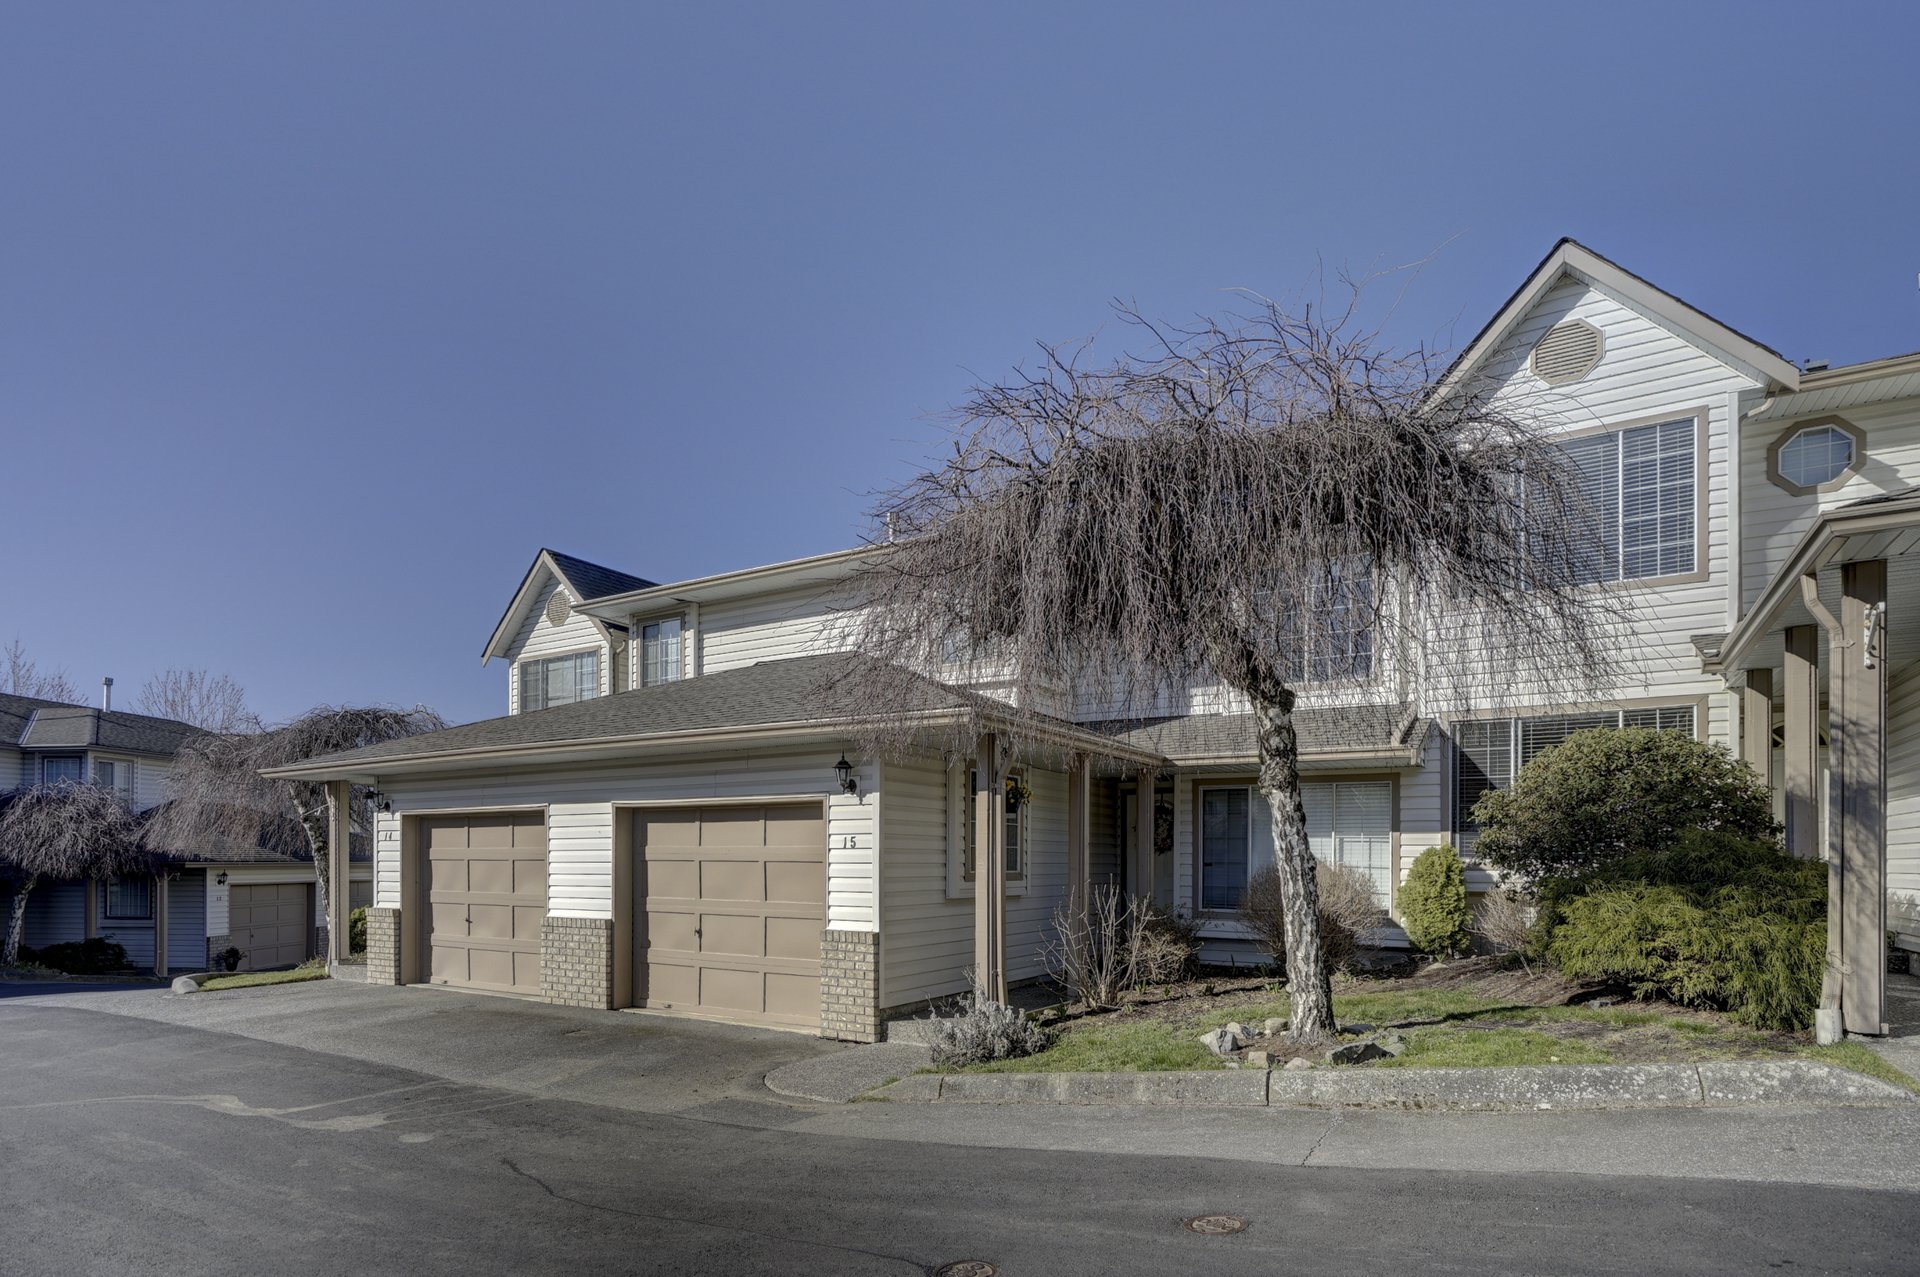 Main Photo: 15 2575 McAdam in Abbotsford: Abbotsford East Townhouse for sale : MLS®# R2349950